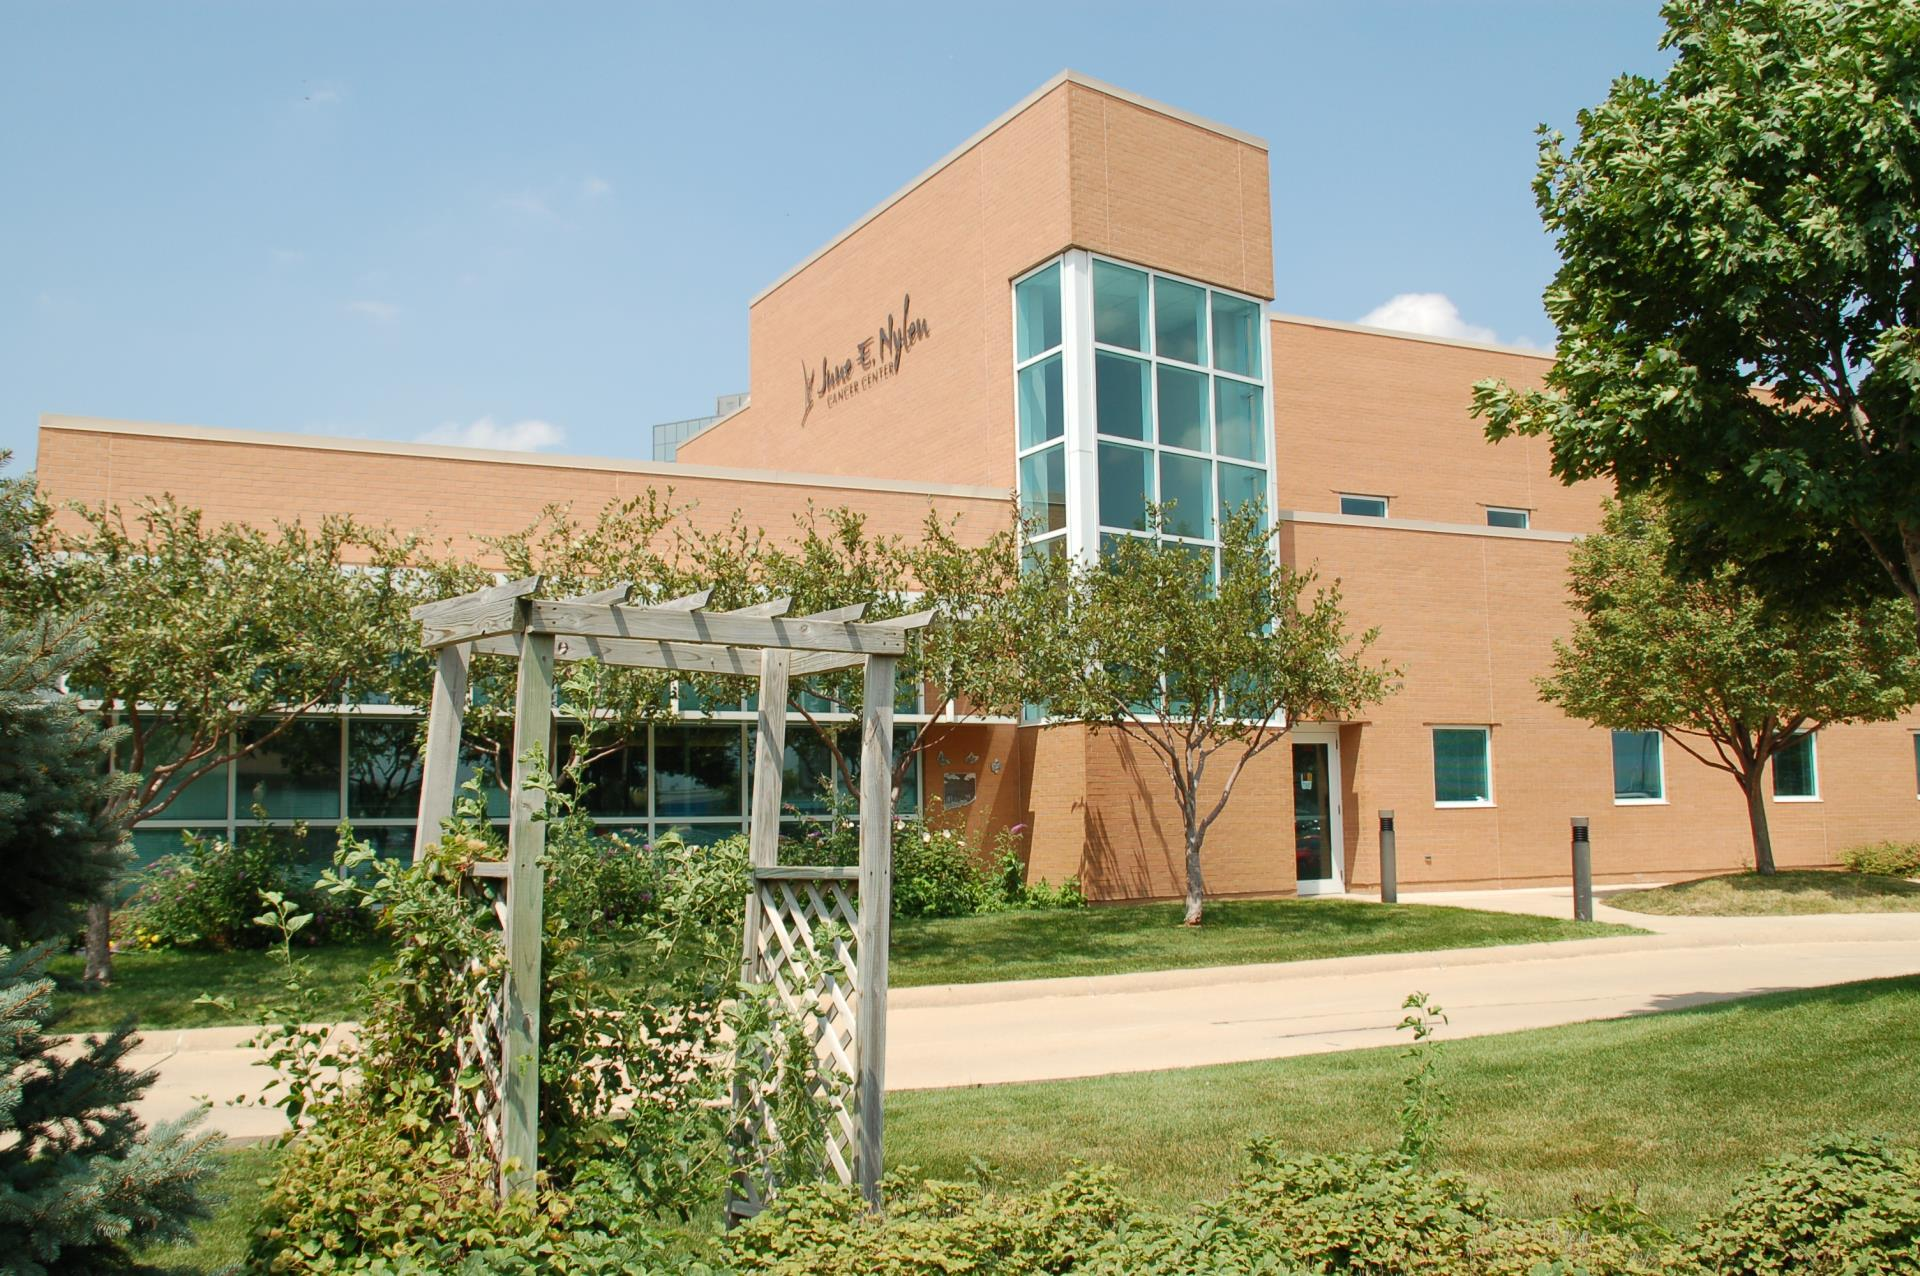 June E. Nylen Cancer Center in Sioux City